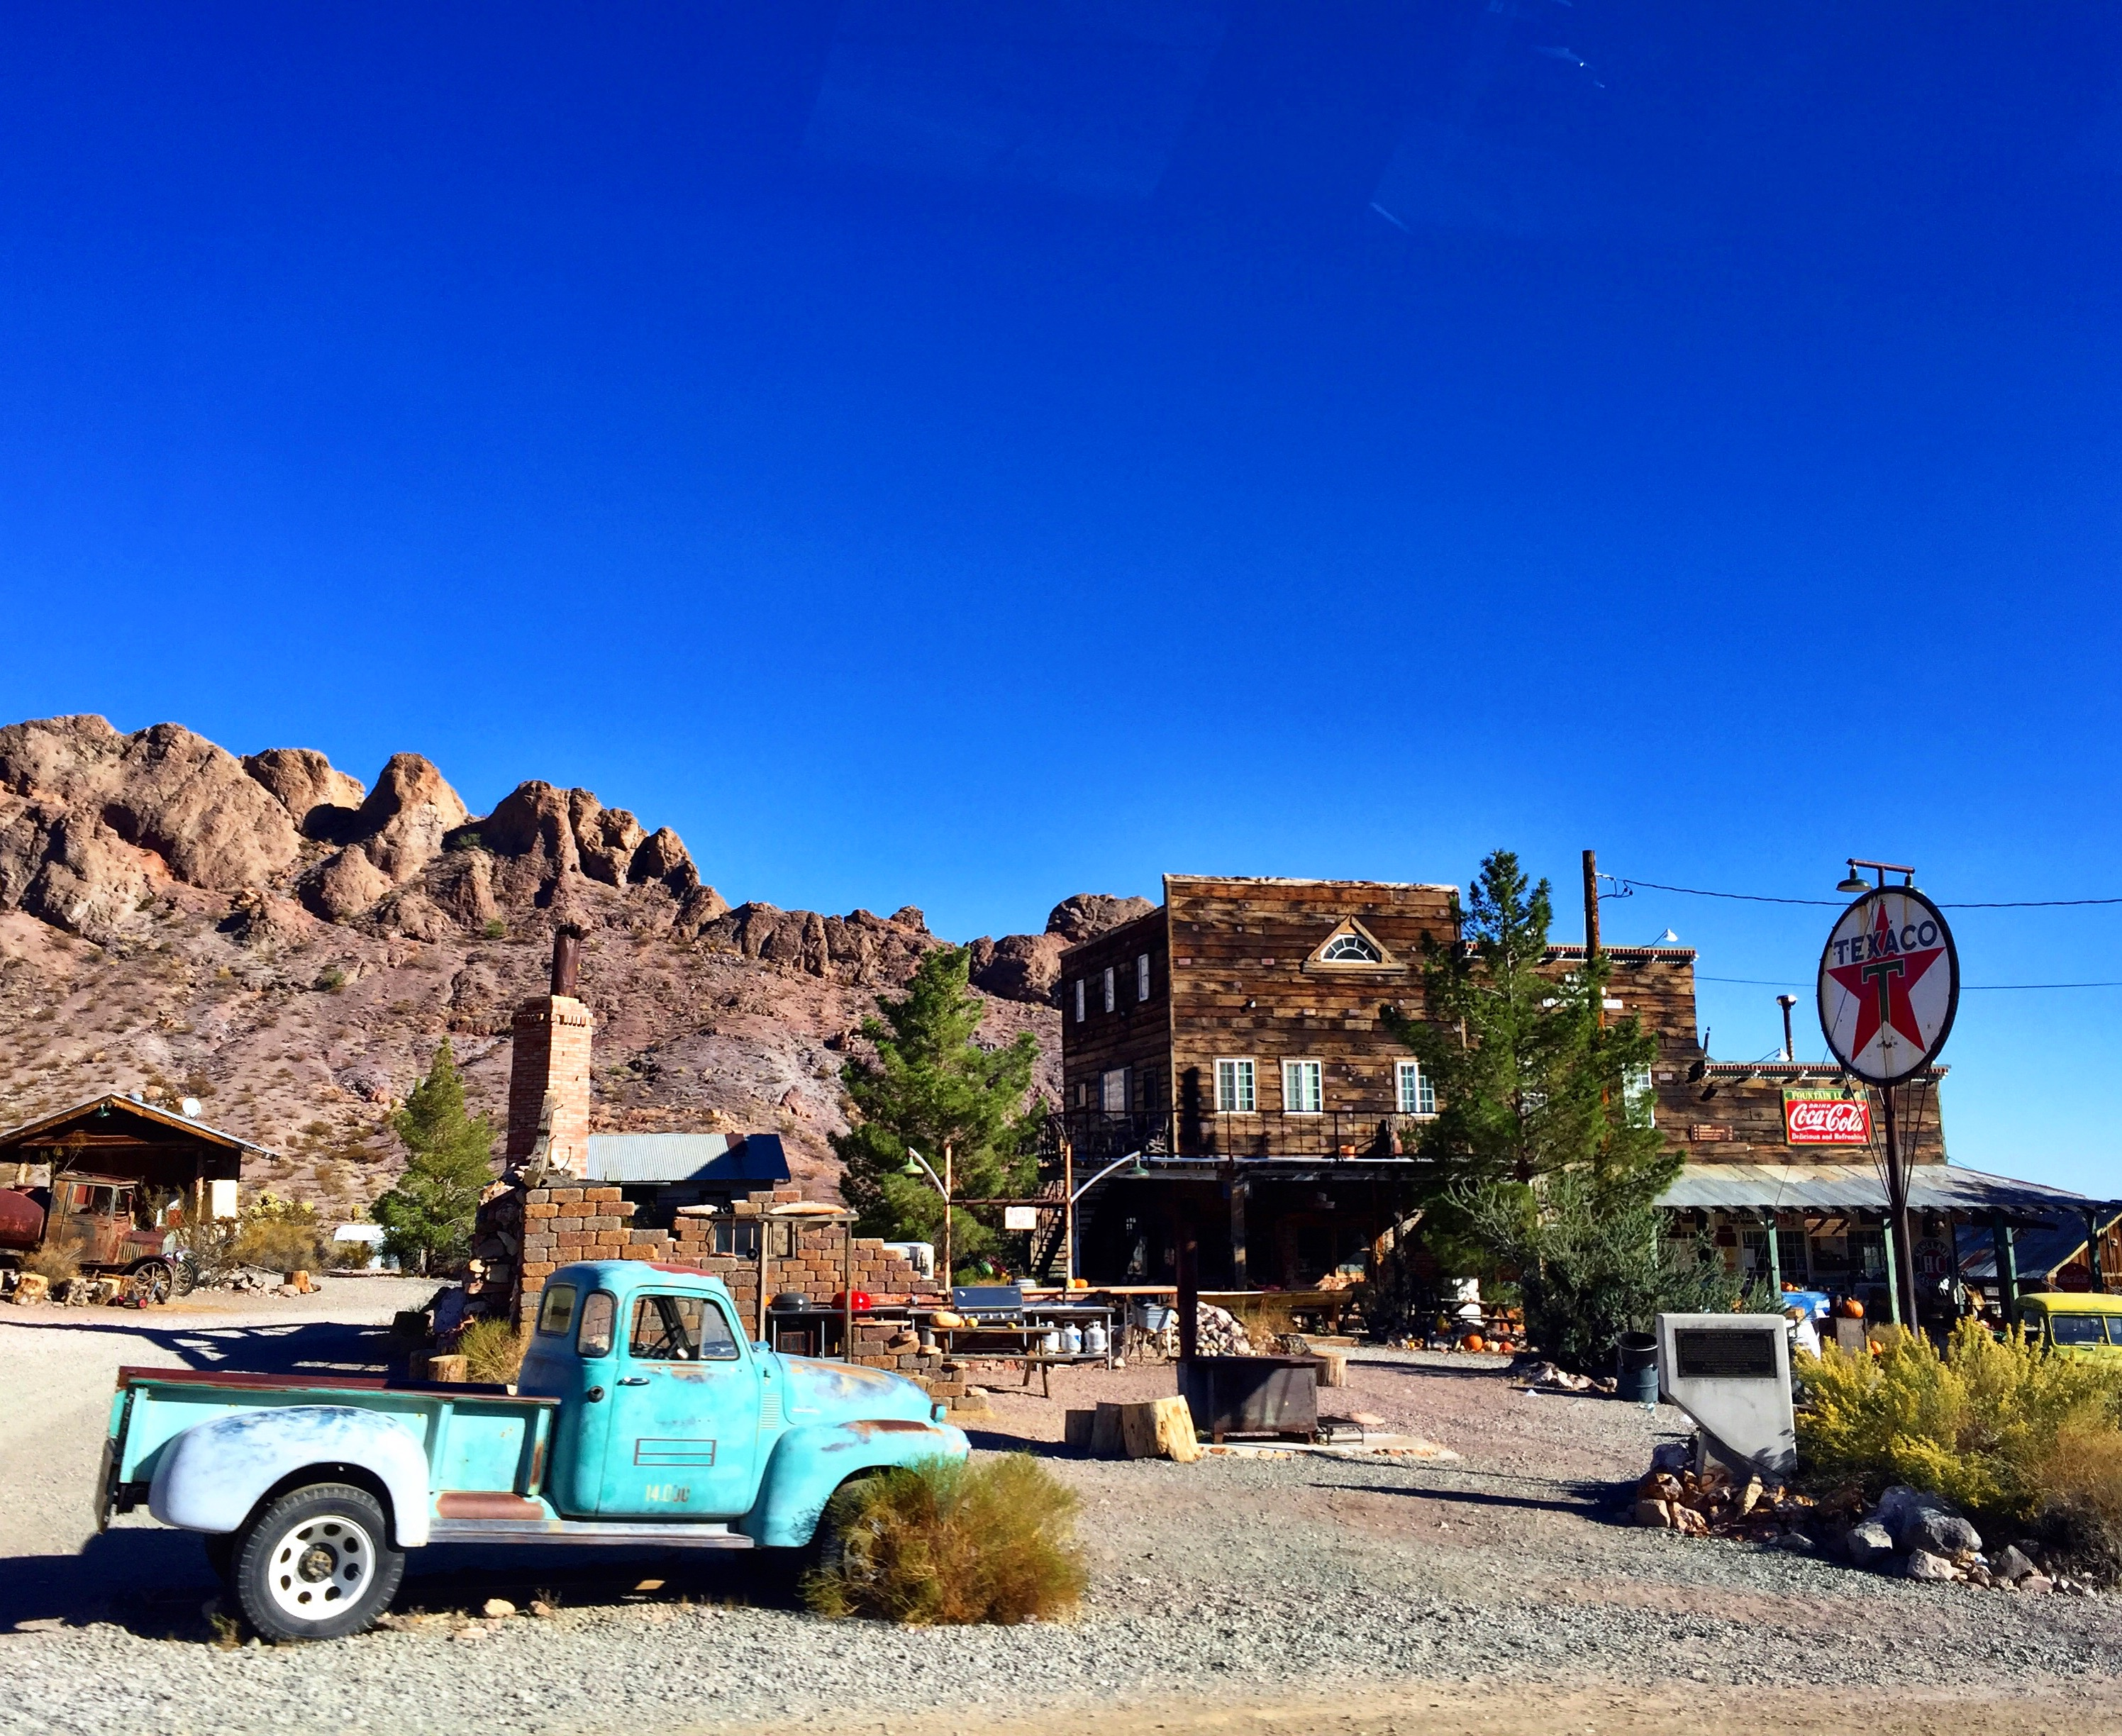 Get away from the Strip and try a tour at the El Dorado mine outside Las Vegas. - JIM BYERS PHOTO